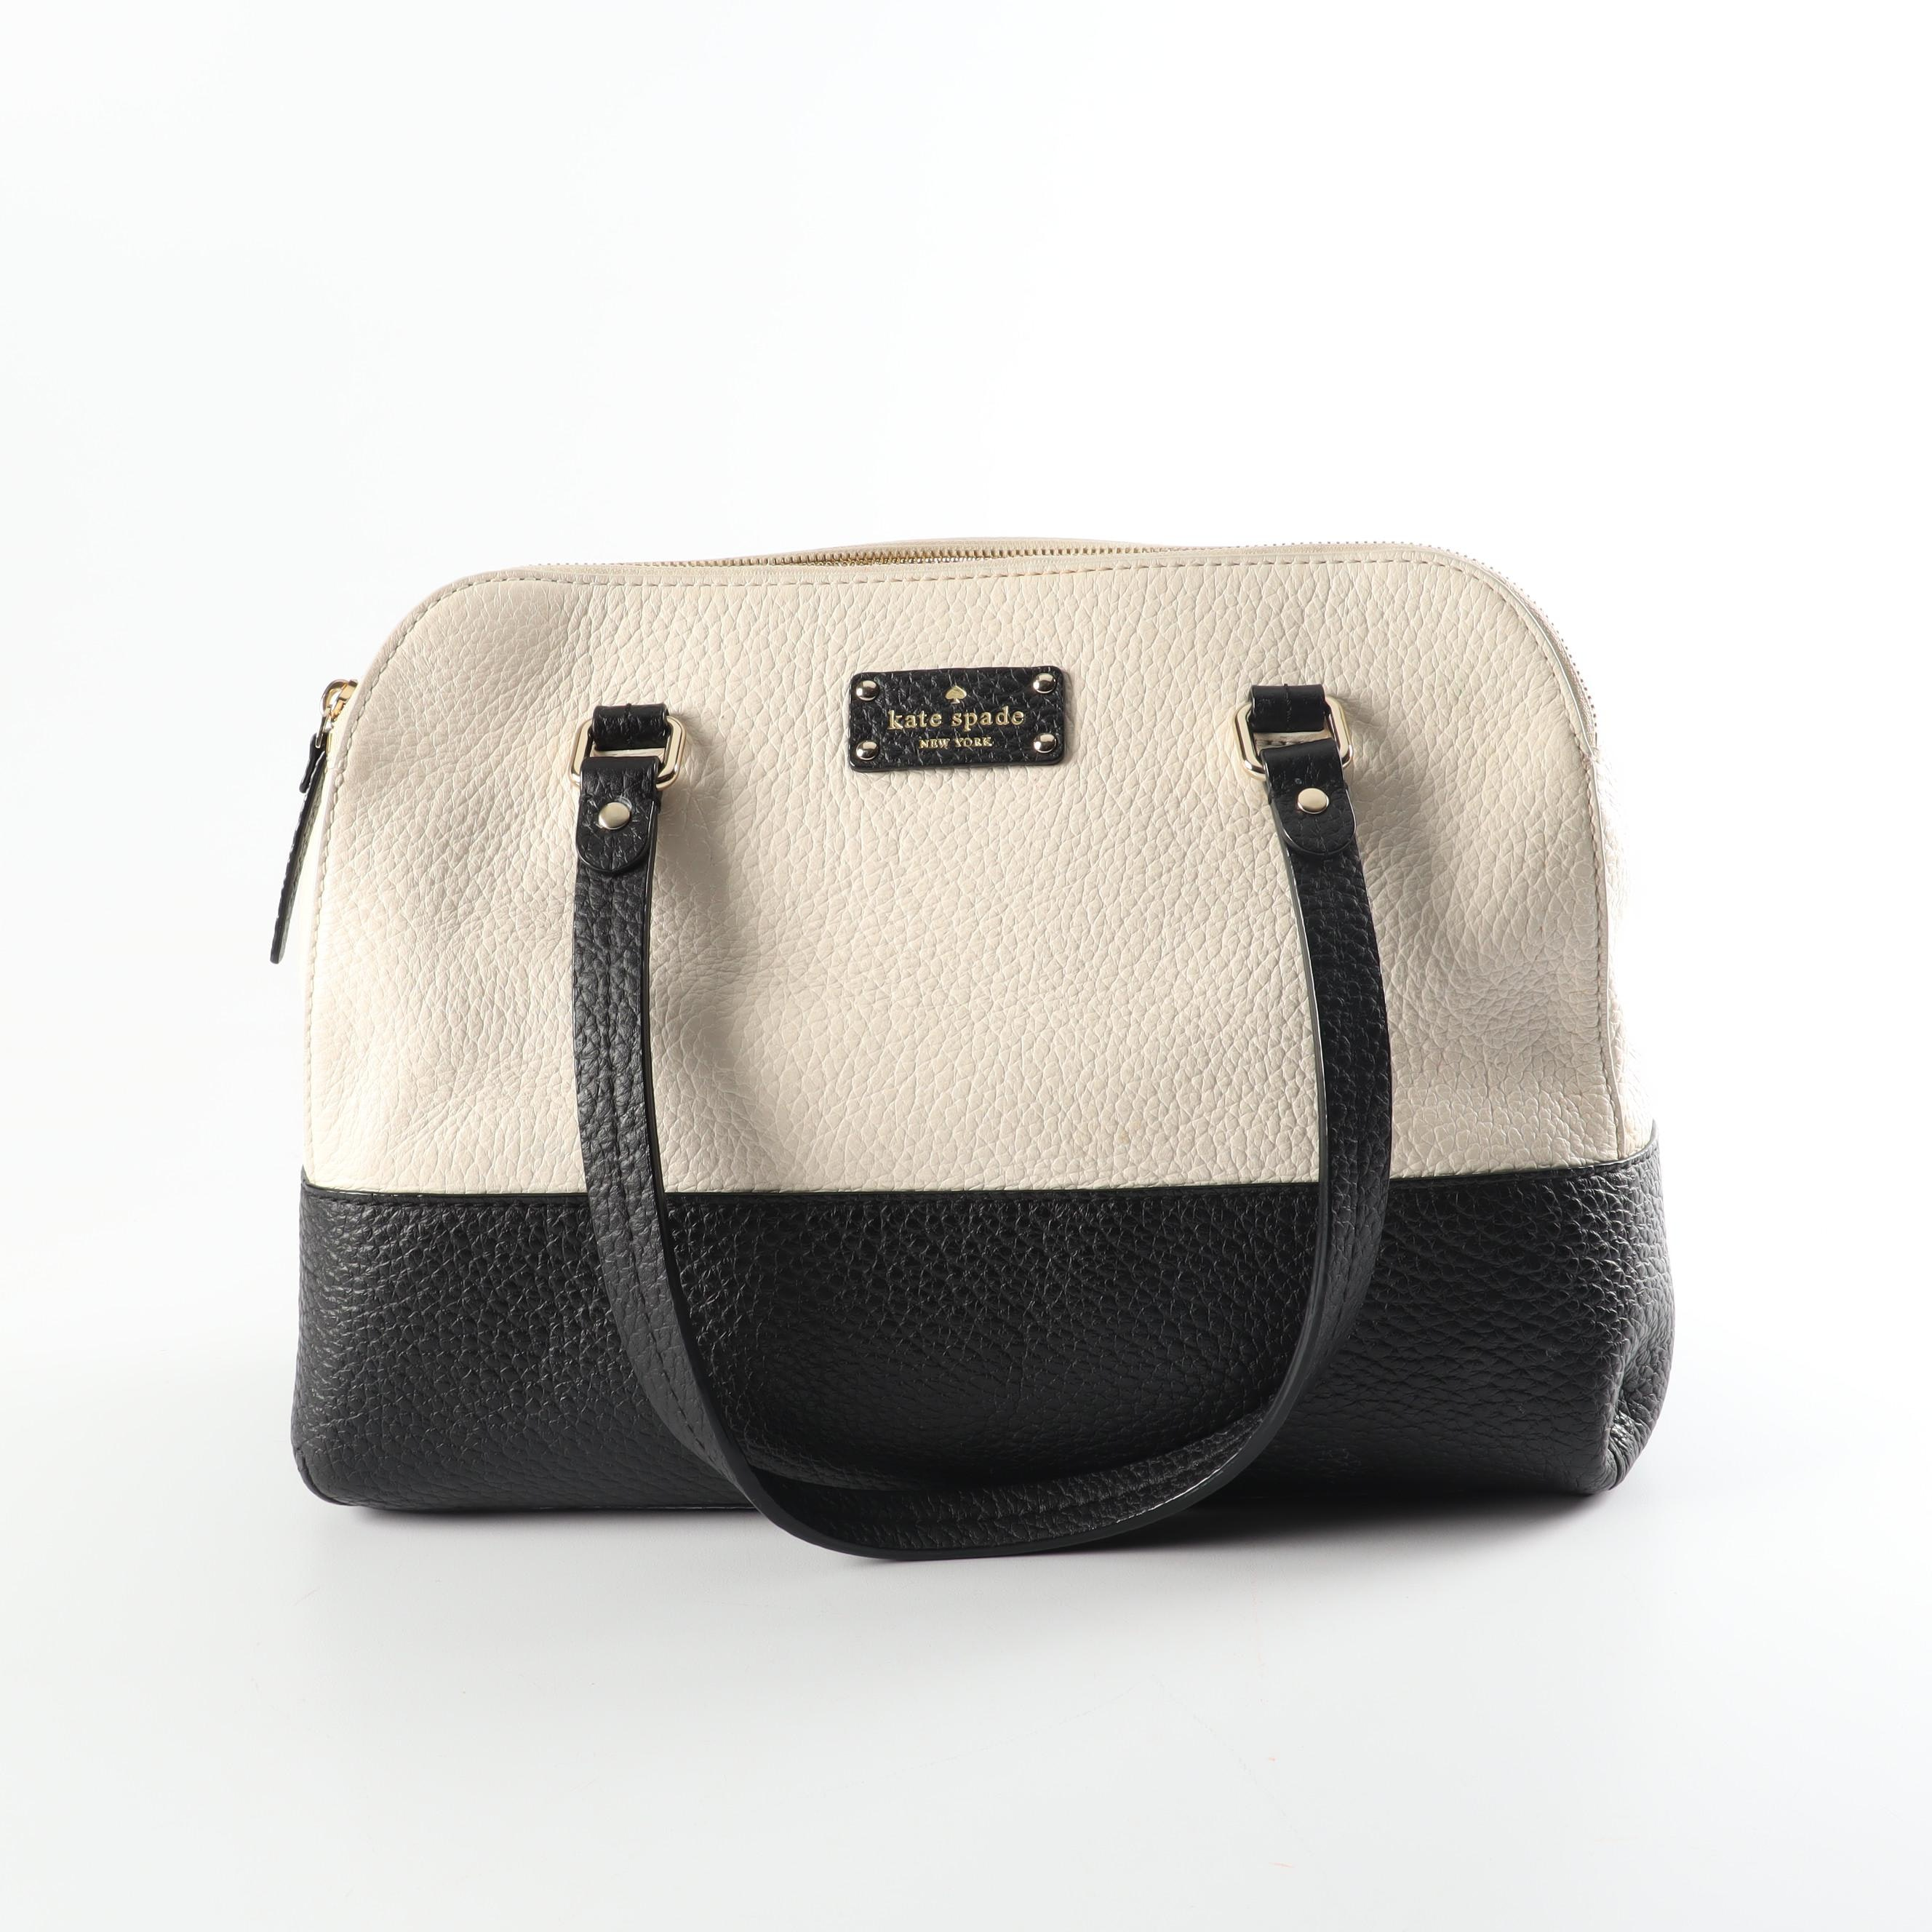 Kate Spade New York Lainey Pebbled Leather Handbag in Ivory and Black